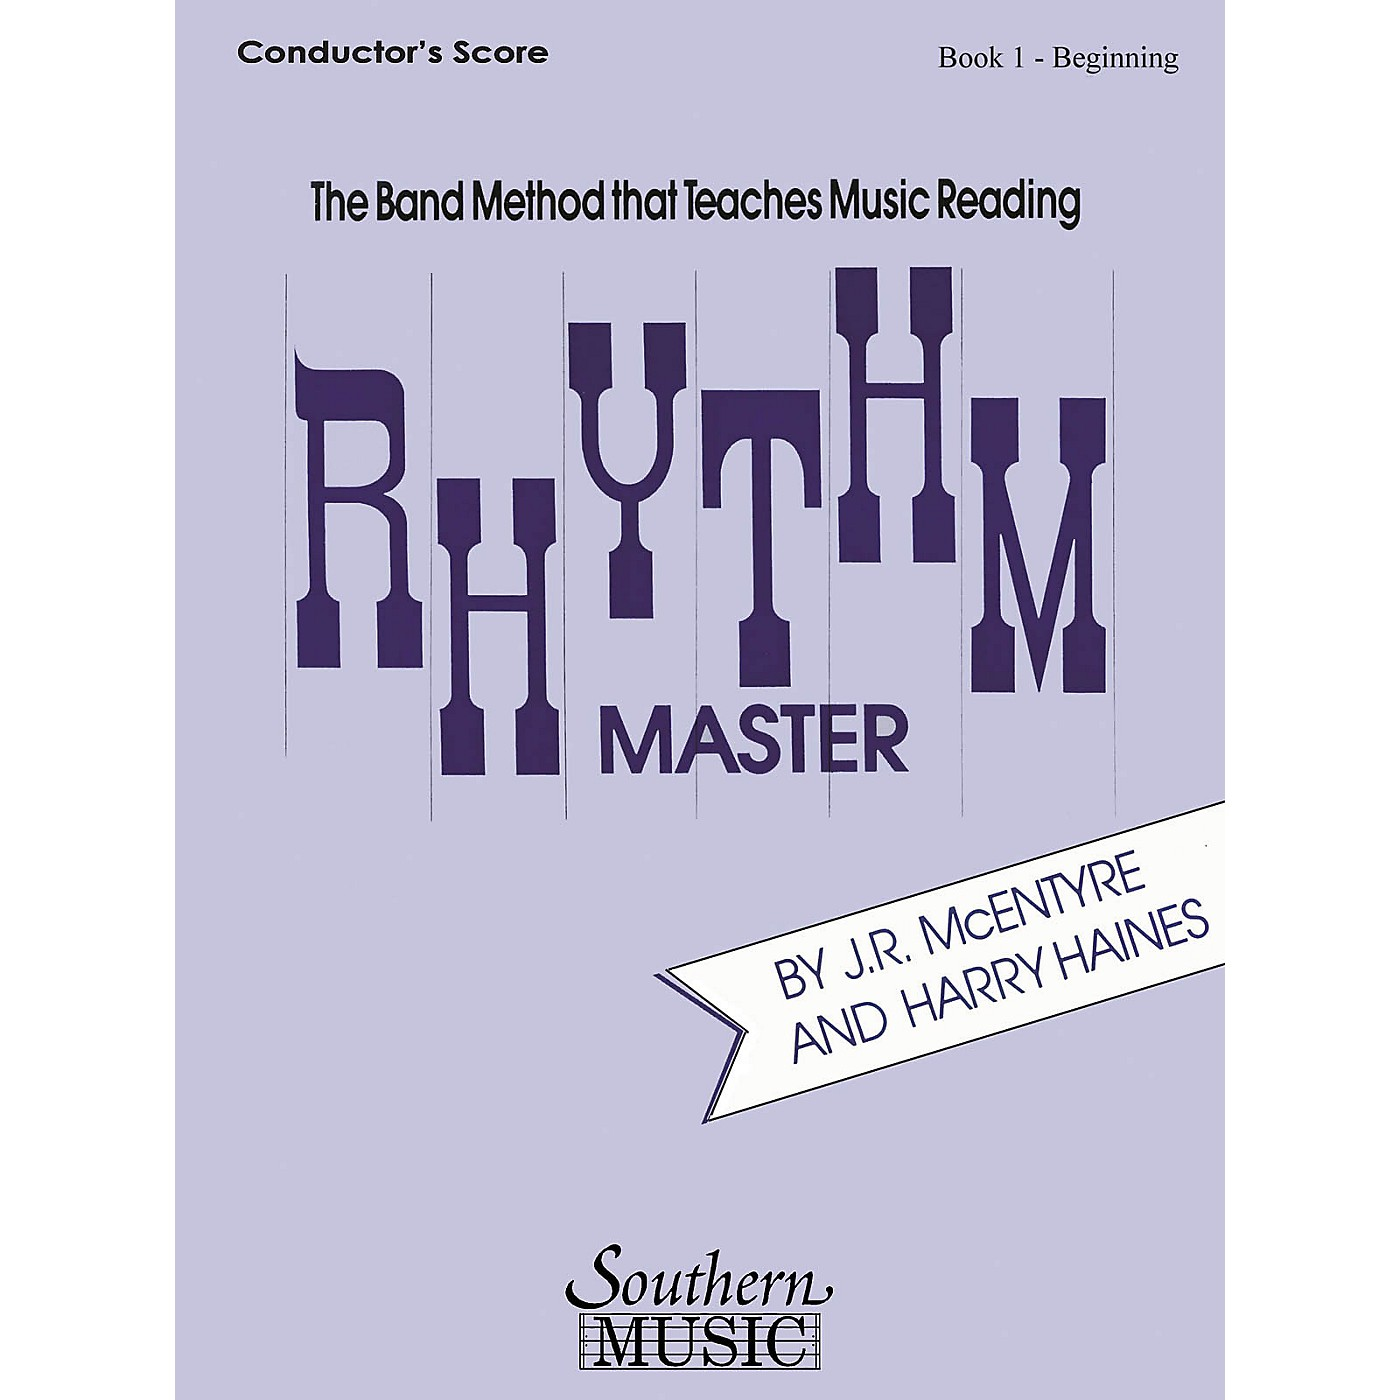 Southern Rhythm Master - Book 1 (Beginner) (Tenor Saxophone) Southern Music Series  by Harry Haines thumbnail